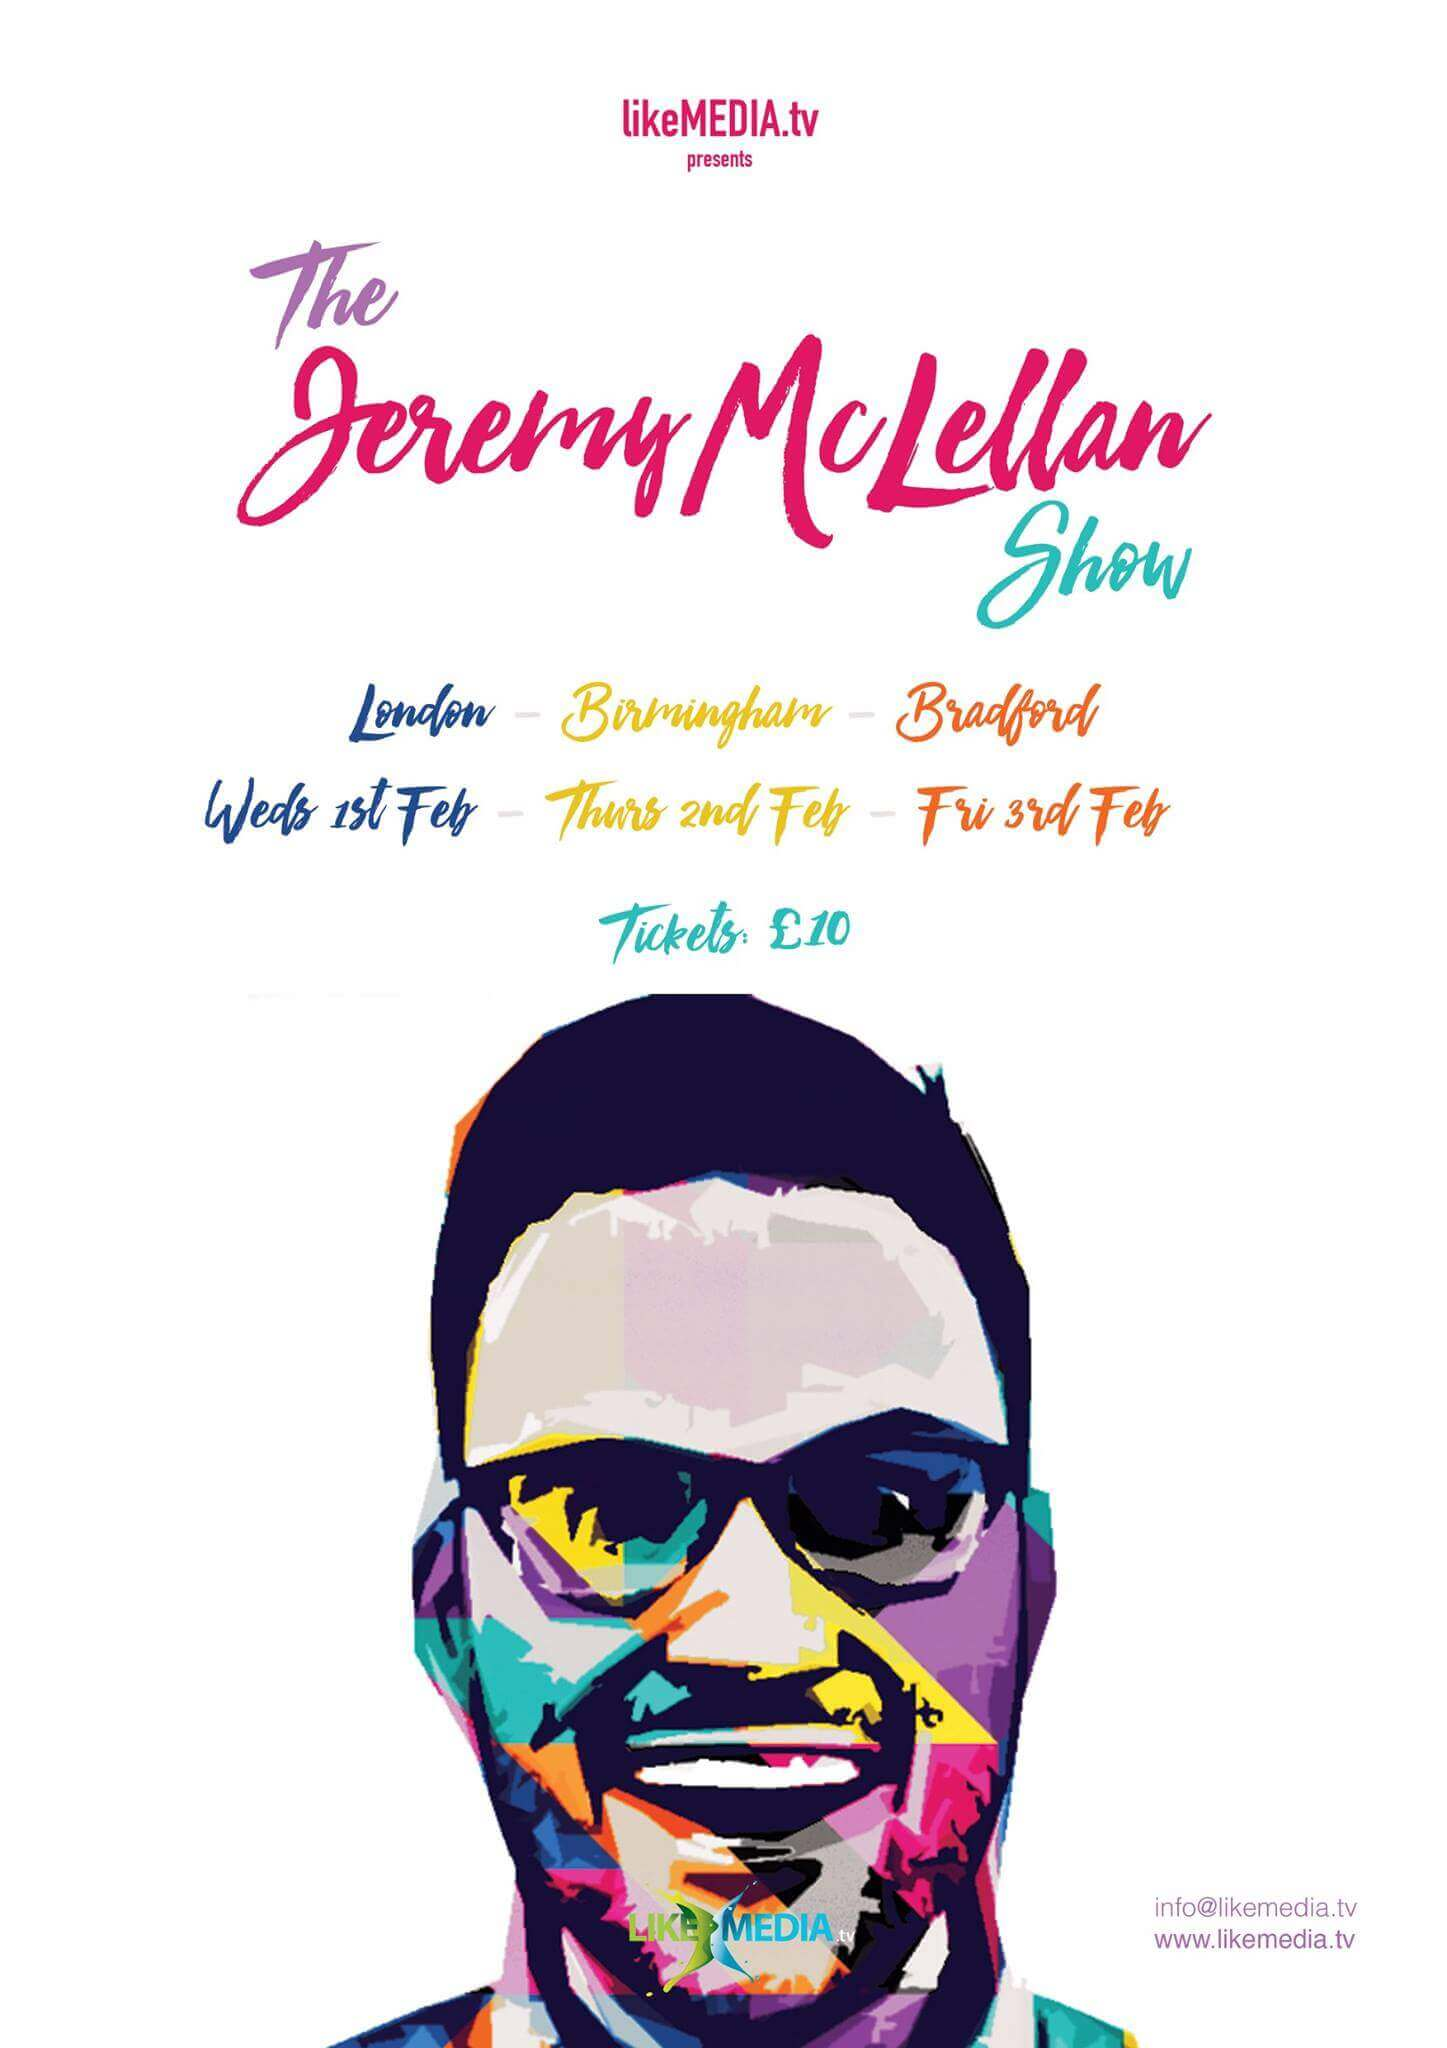 LikeMedia - THE JEREMY MCLELLAN SHOW